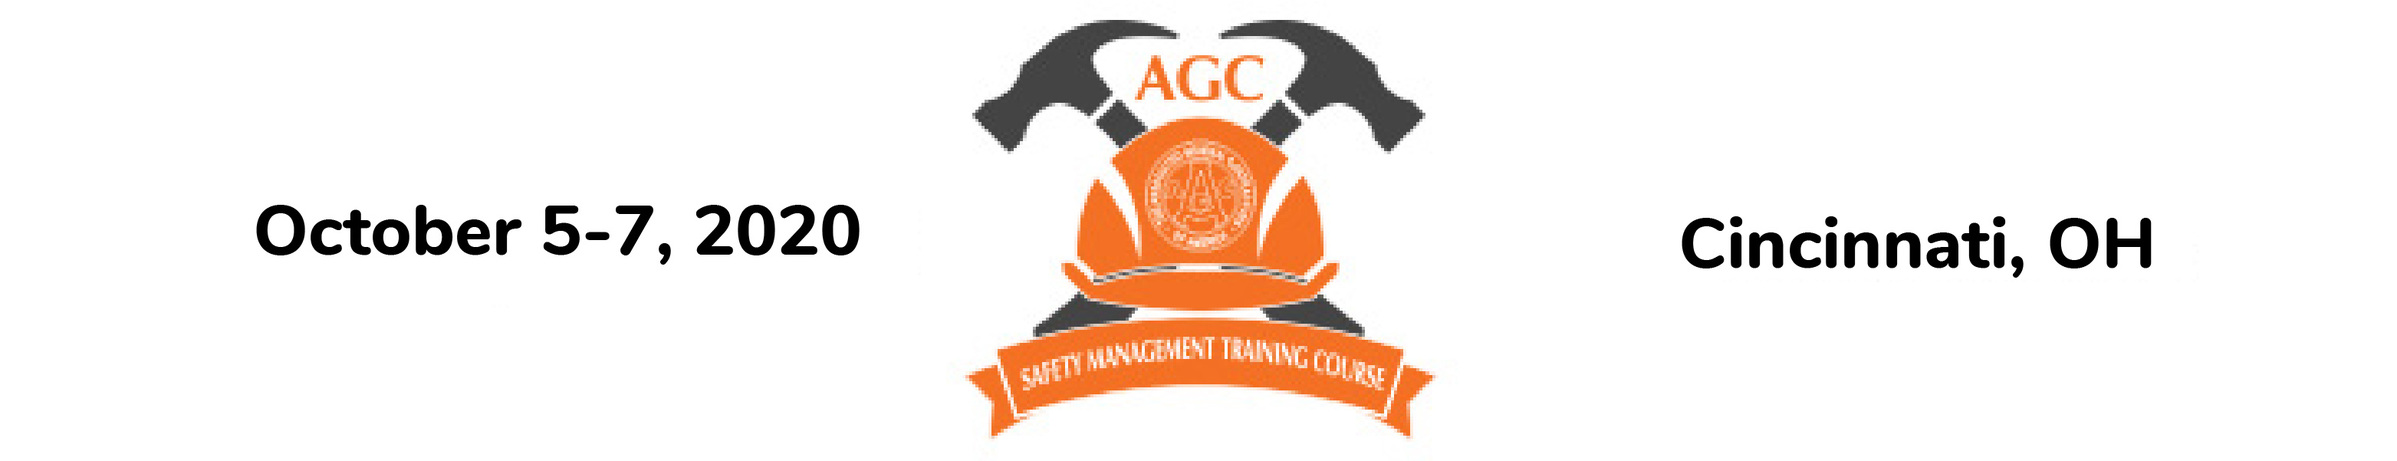 Safety Management Training Course SMTC